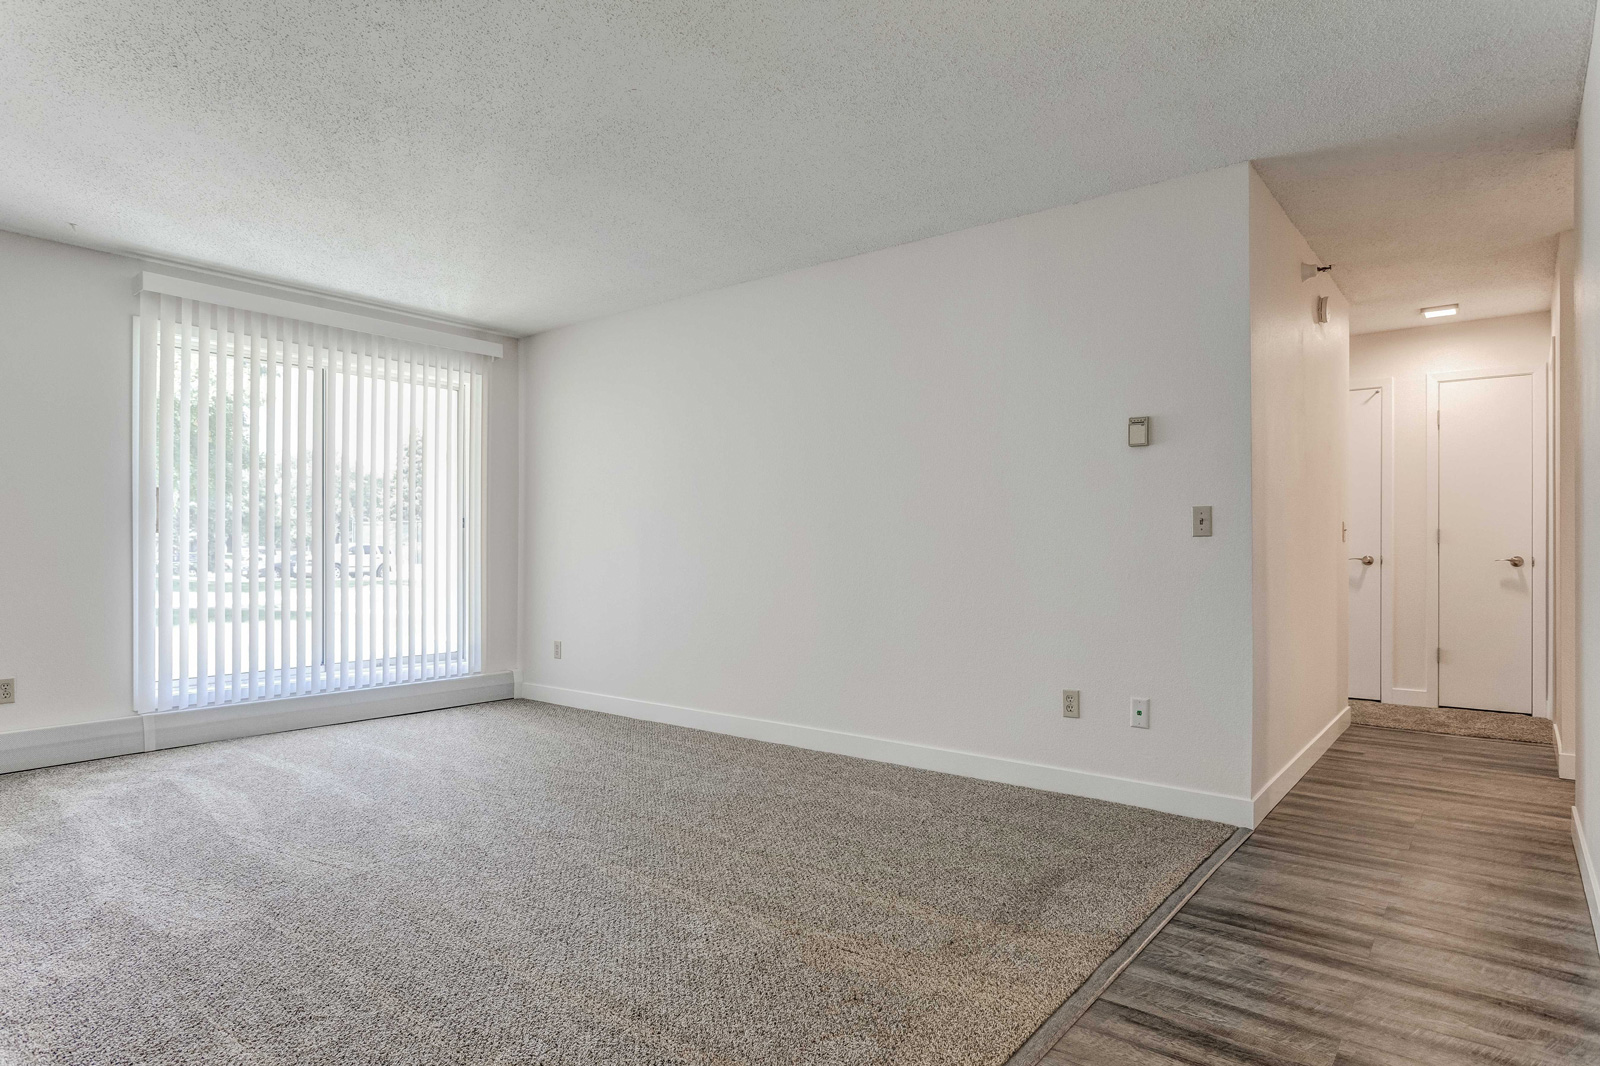 Carriage Oaks living room view with brand new carpet and hardwood flooring.